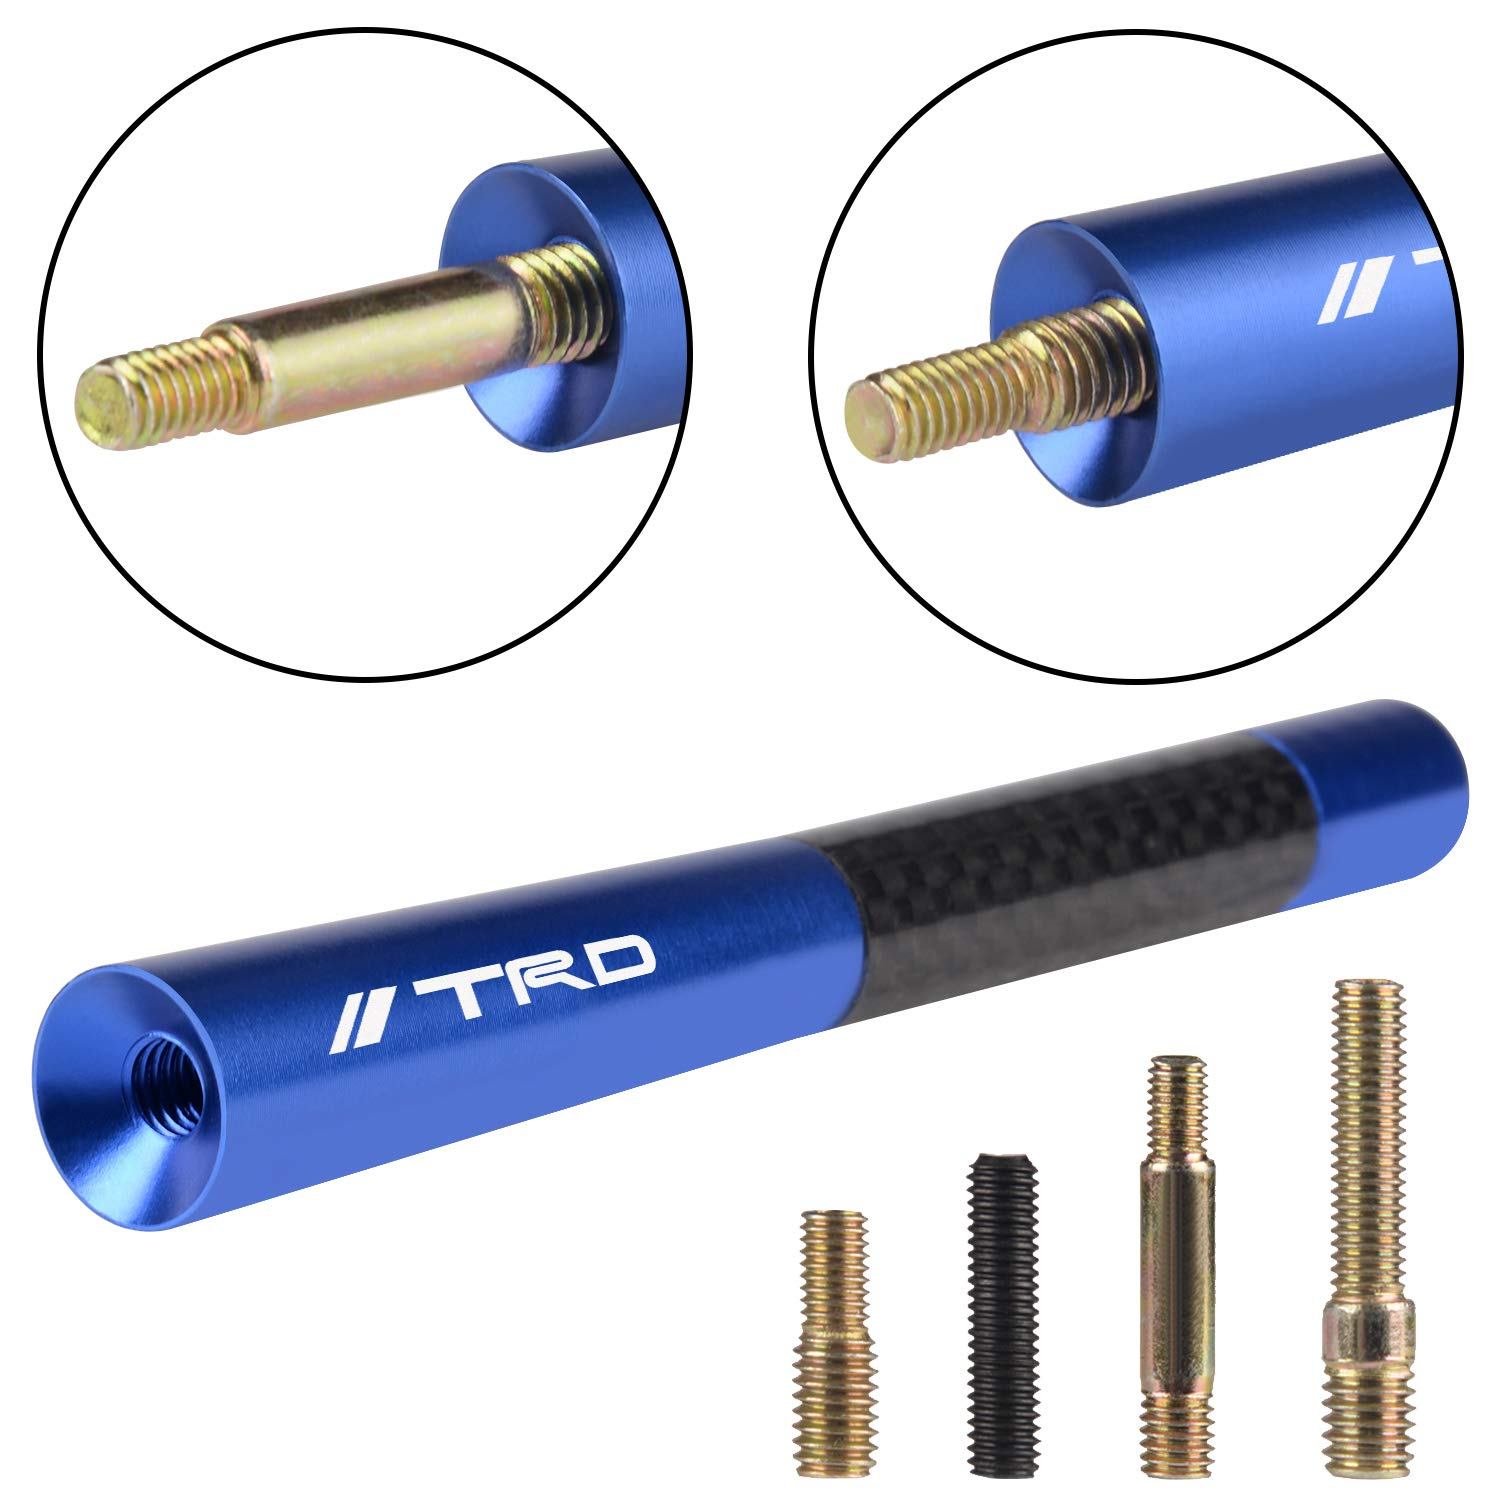 1995-2016 The Stubby TRD Antenna for Toyota Tacoma Models TRD Extreme Blue Ironman Edition X-Runner TRD Sport - Will fit Any Tacoma TRD Packages TRD Off-Road 1995-2016 T//X Baja TRD Pro